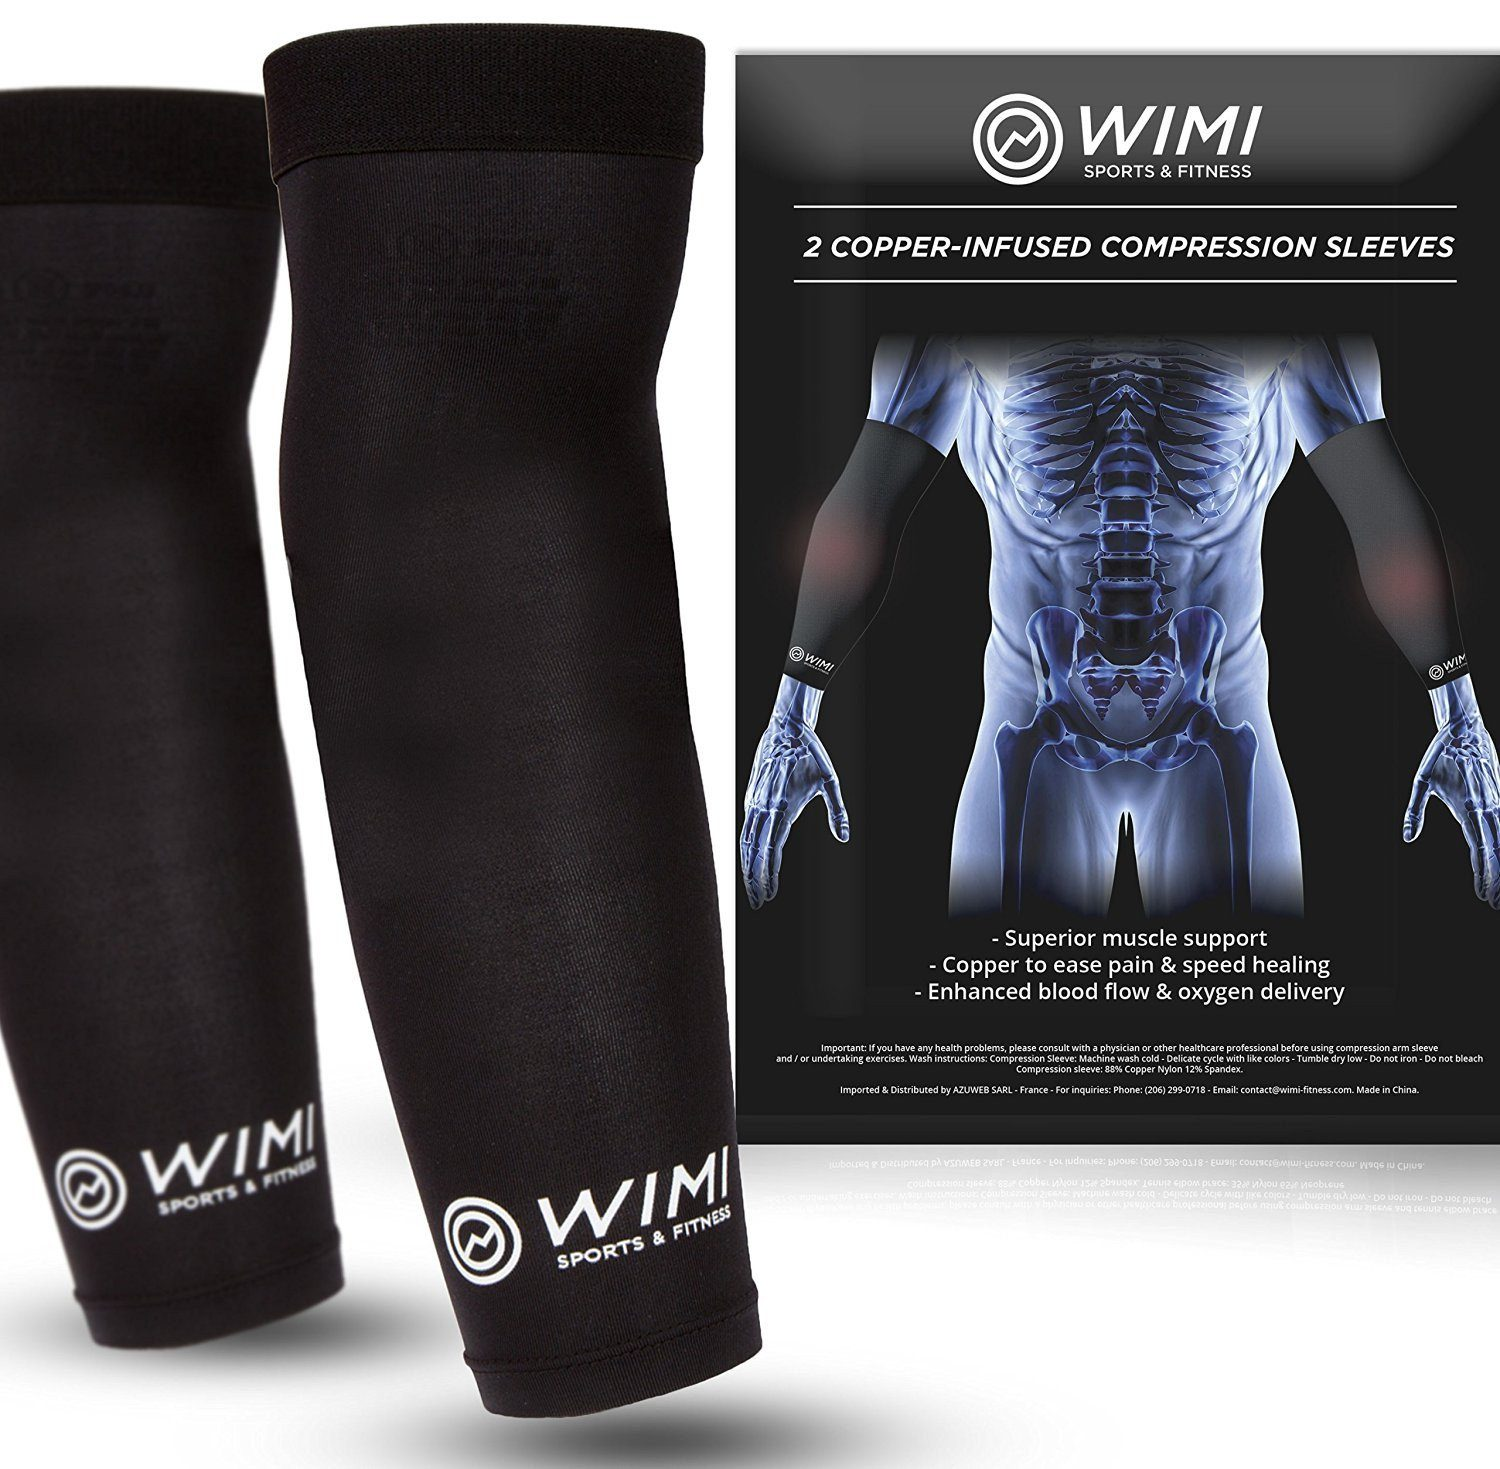 Copper-Infused Compression Sleeves 2-Pack